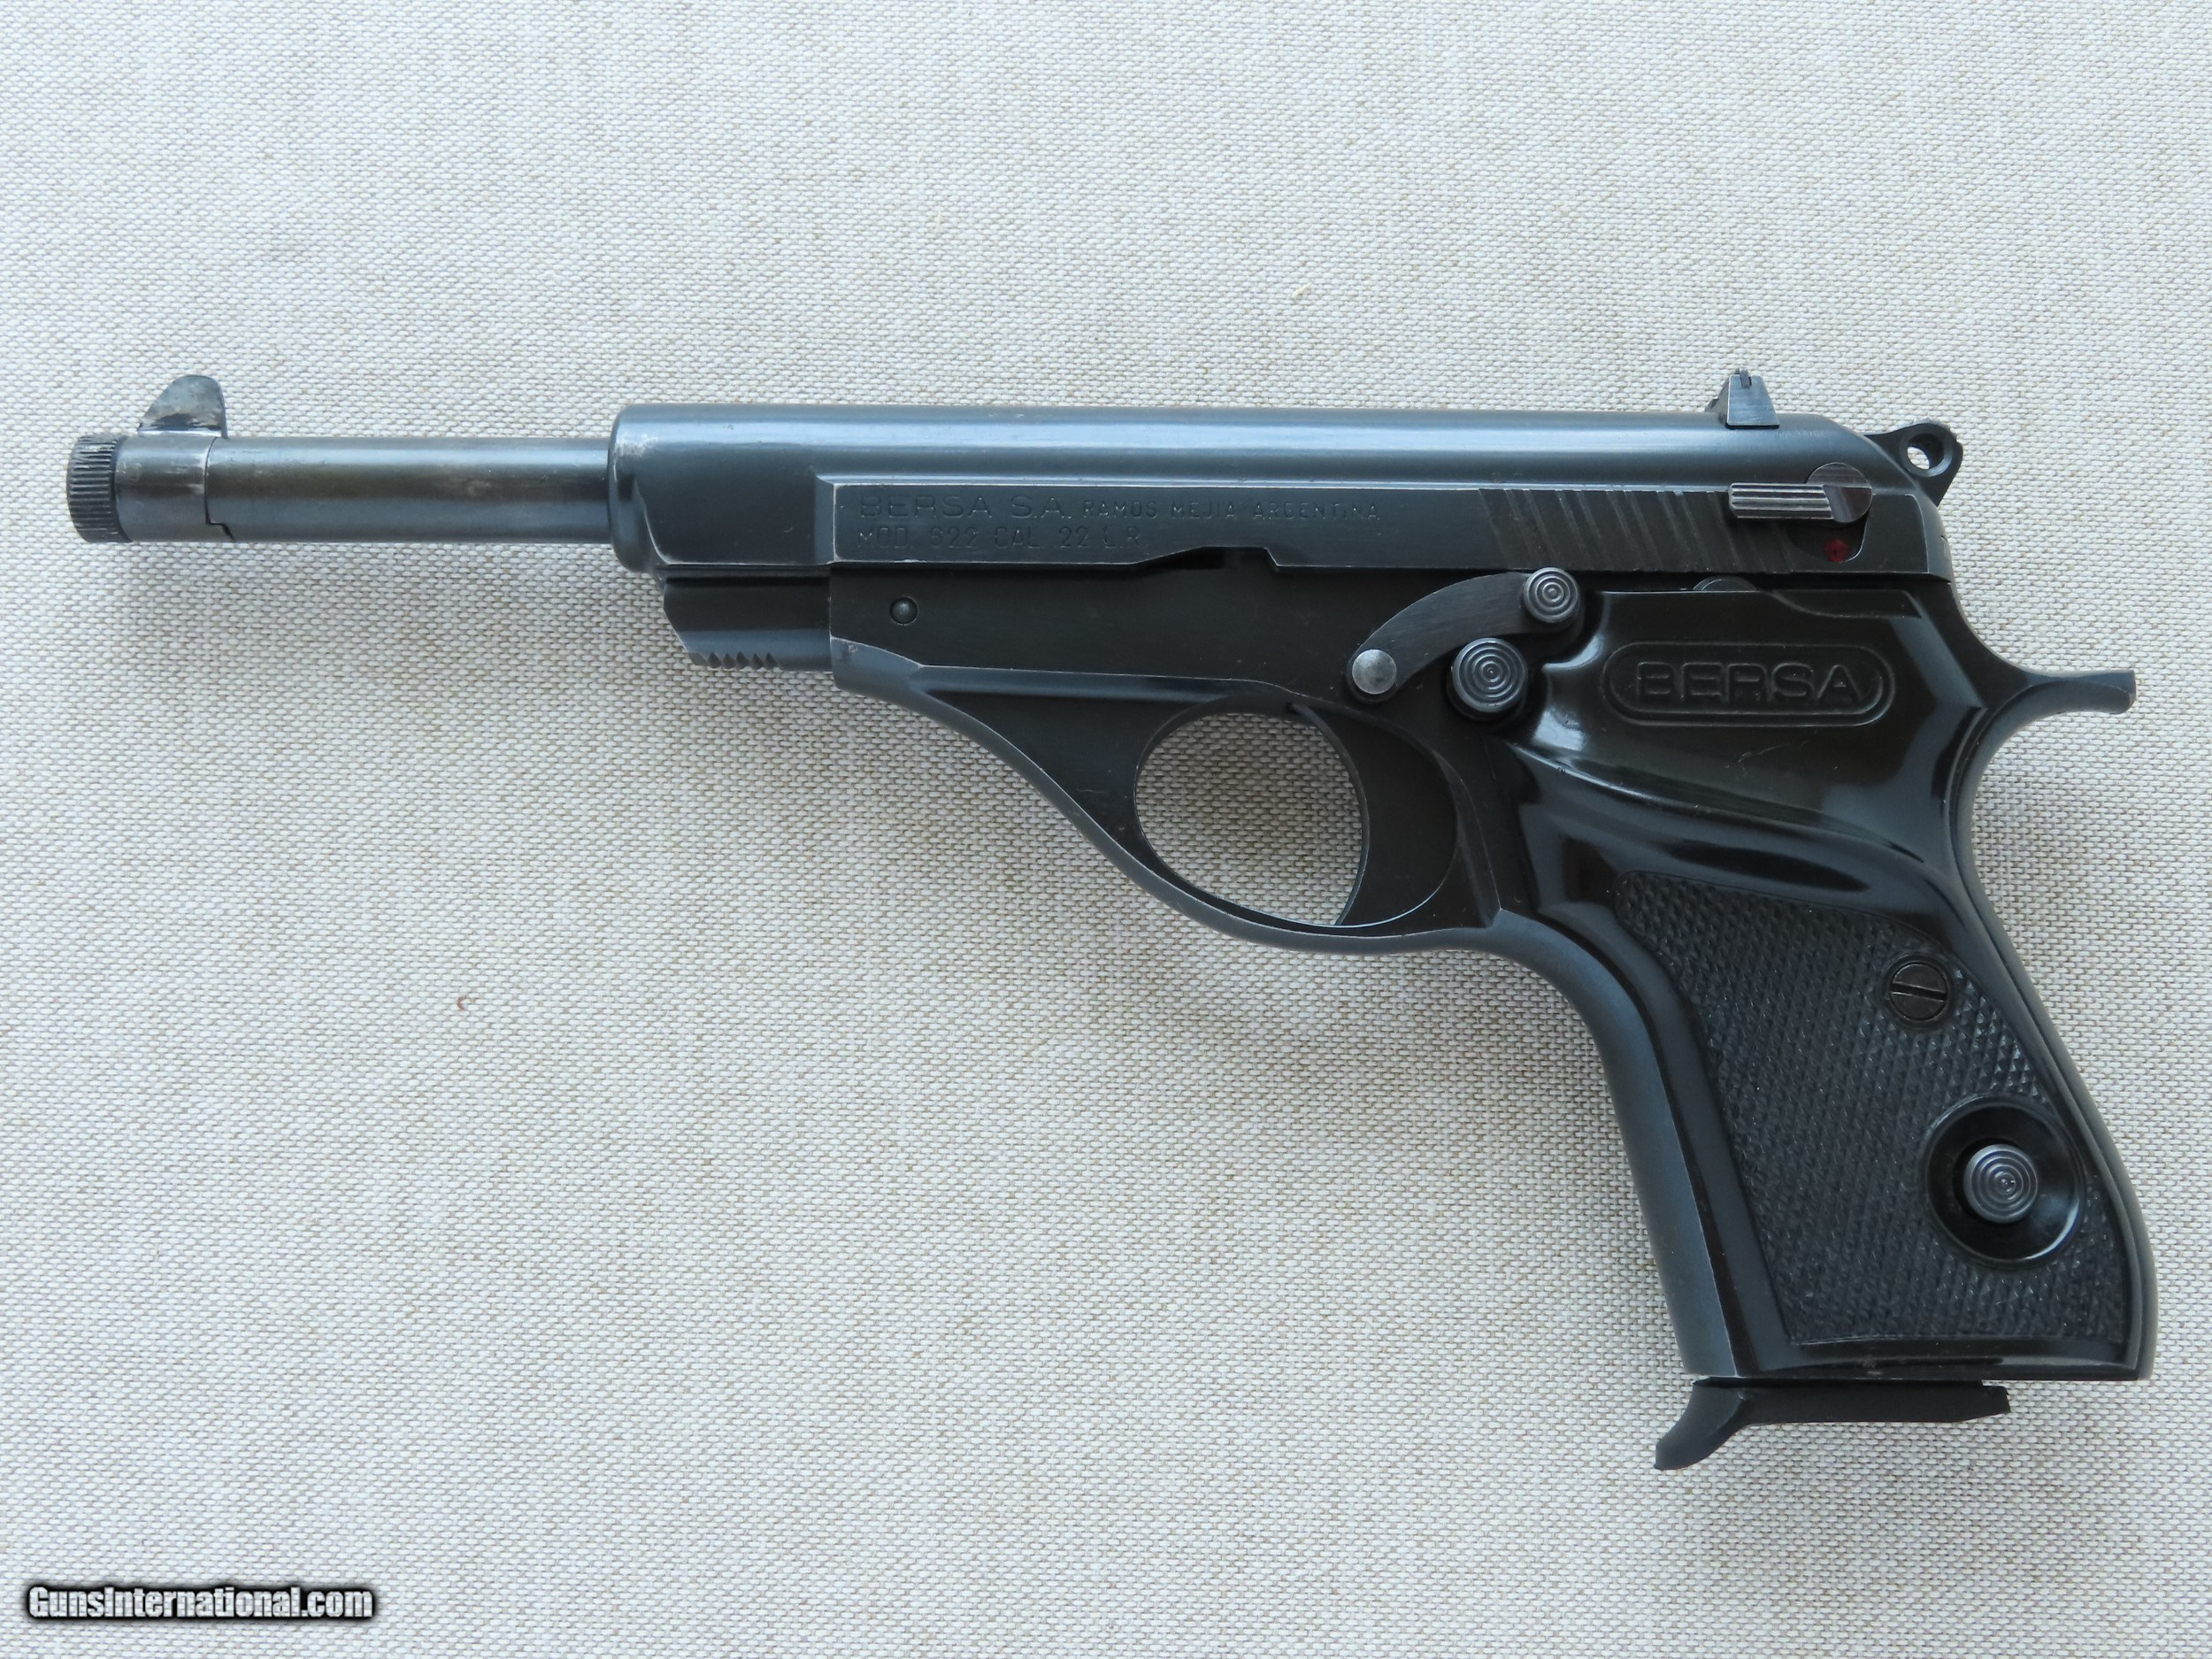 1979-'82 Vintage Bersa Model 622 Pistol in  22LR w/ Factory